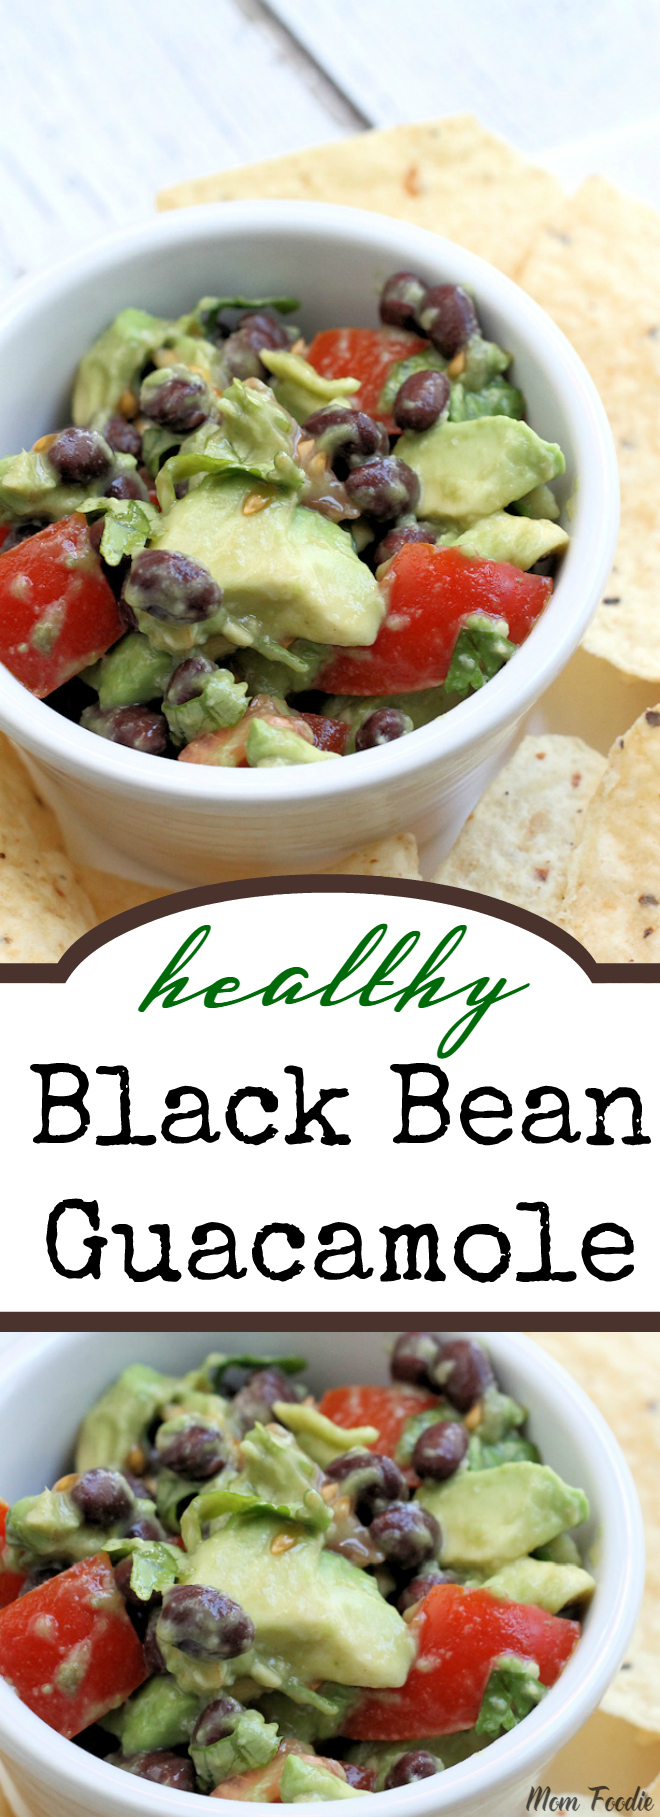 Healthy Black Bean Guacamole Recipe: Guilt Free Snack